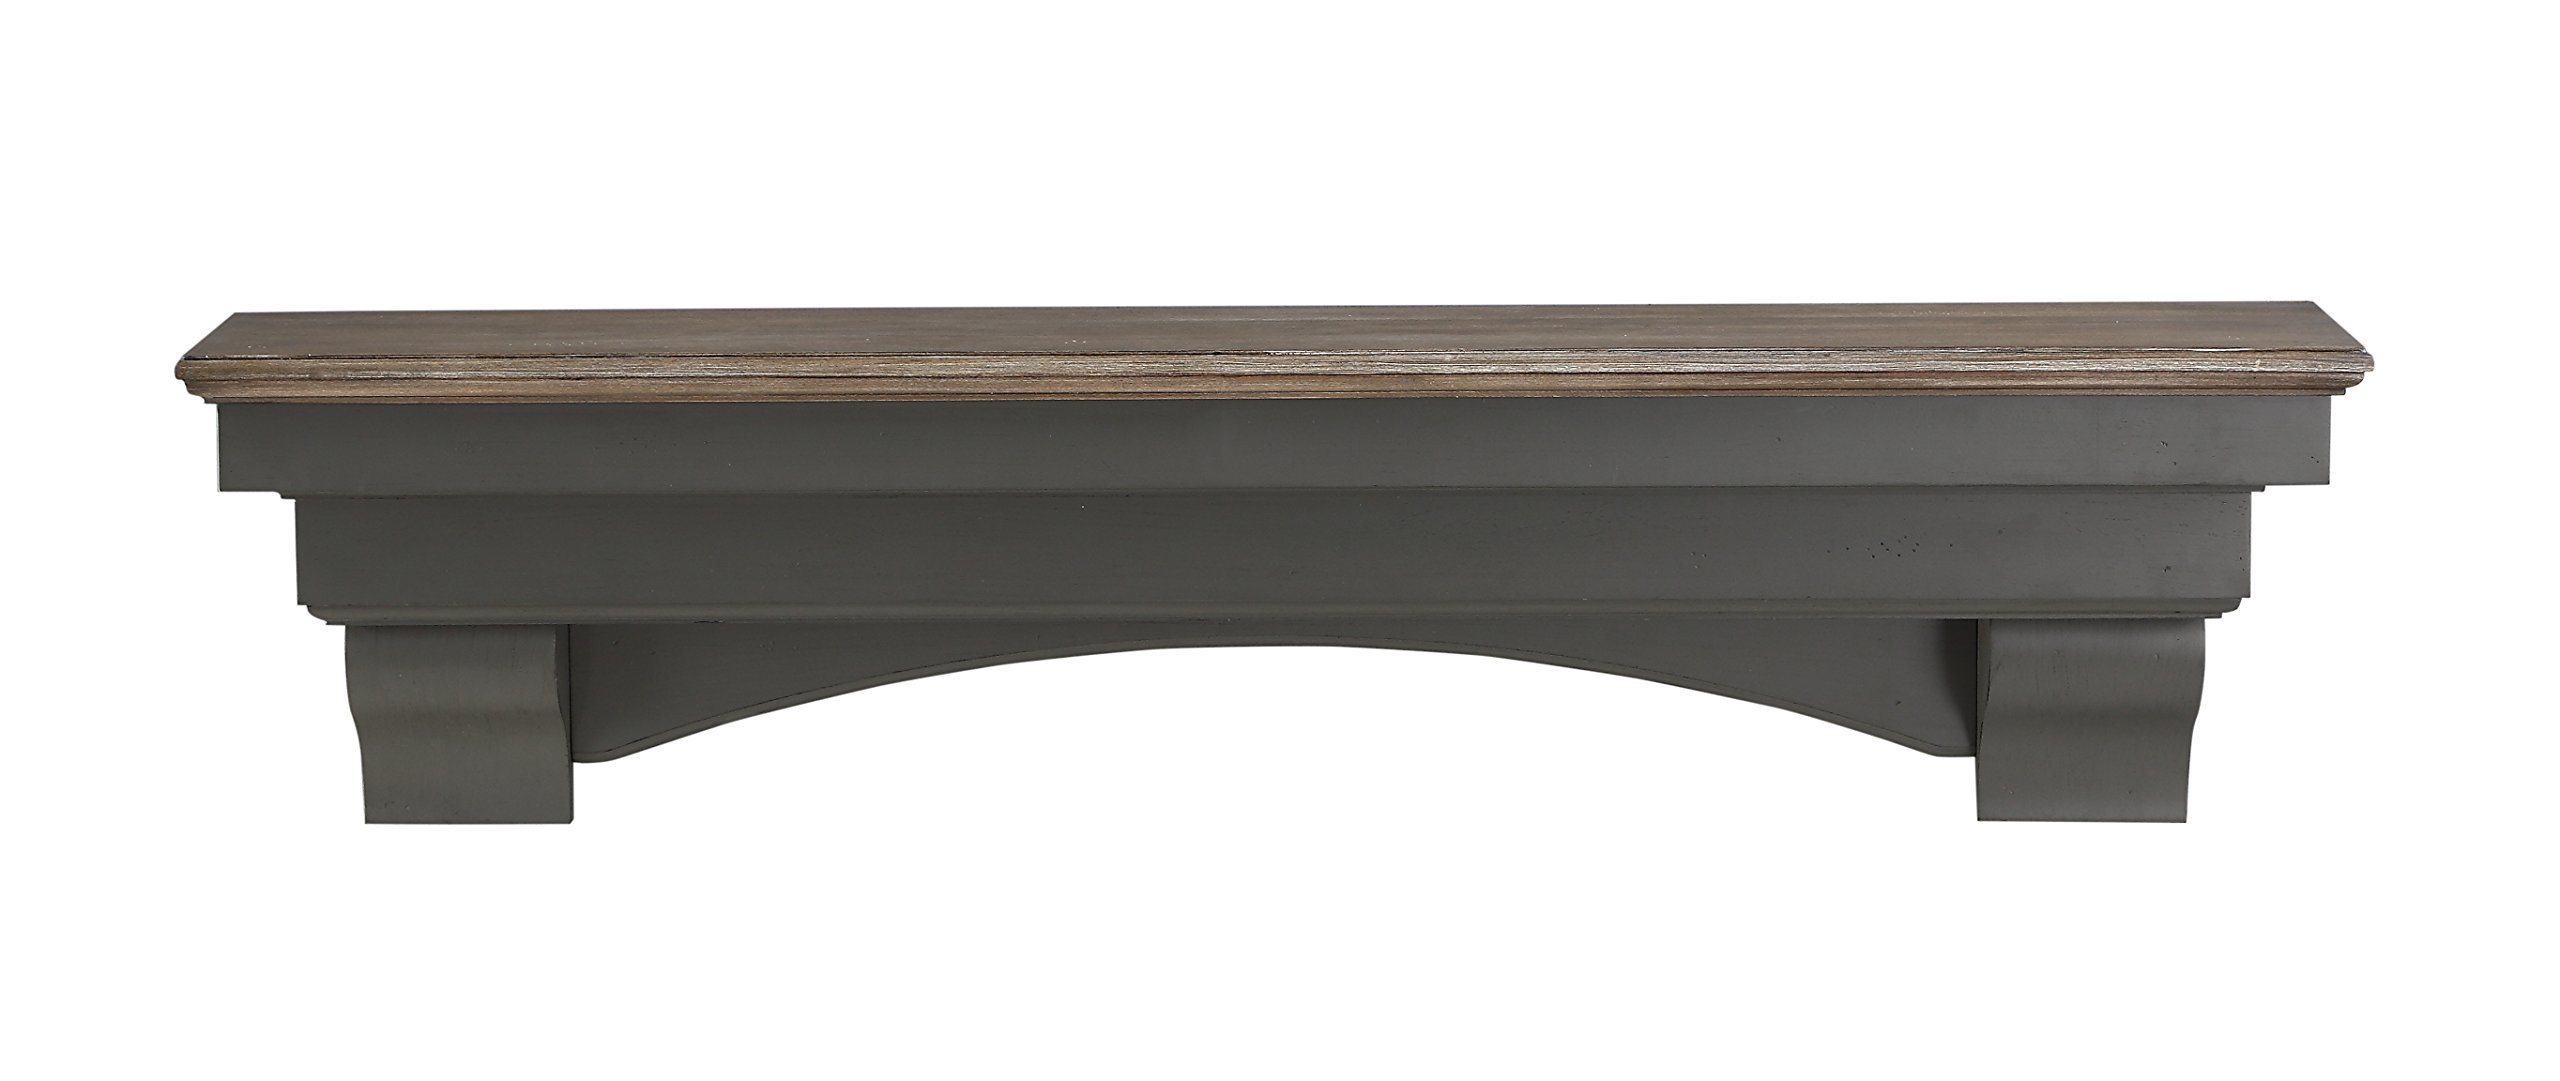 Pearl Mantels 499-72-27 Hadley Mantel Shelf, 72-Inch, Cottage Distressed by Pearl Mantels